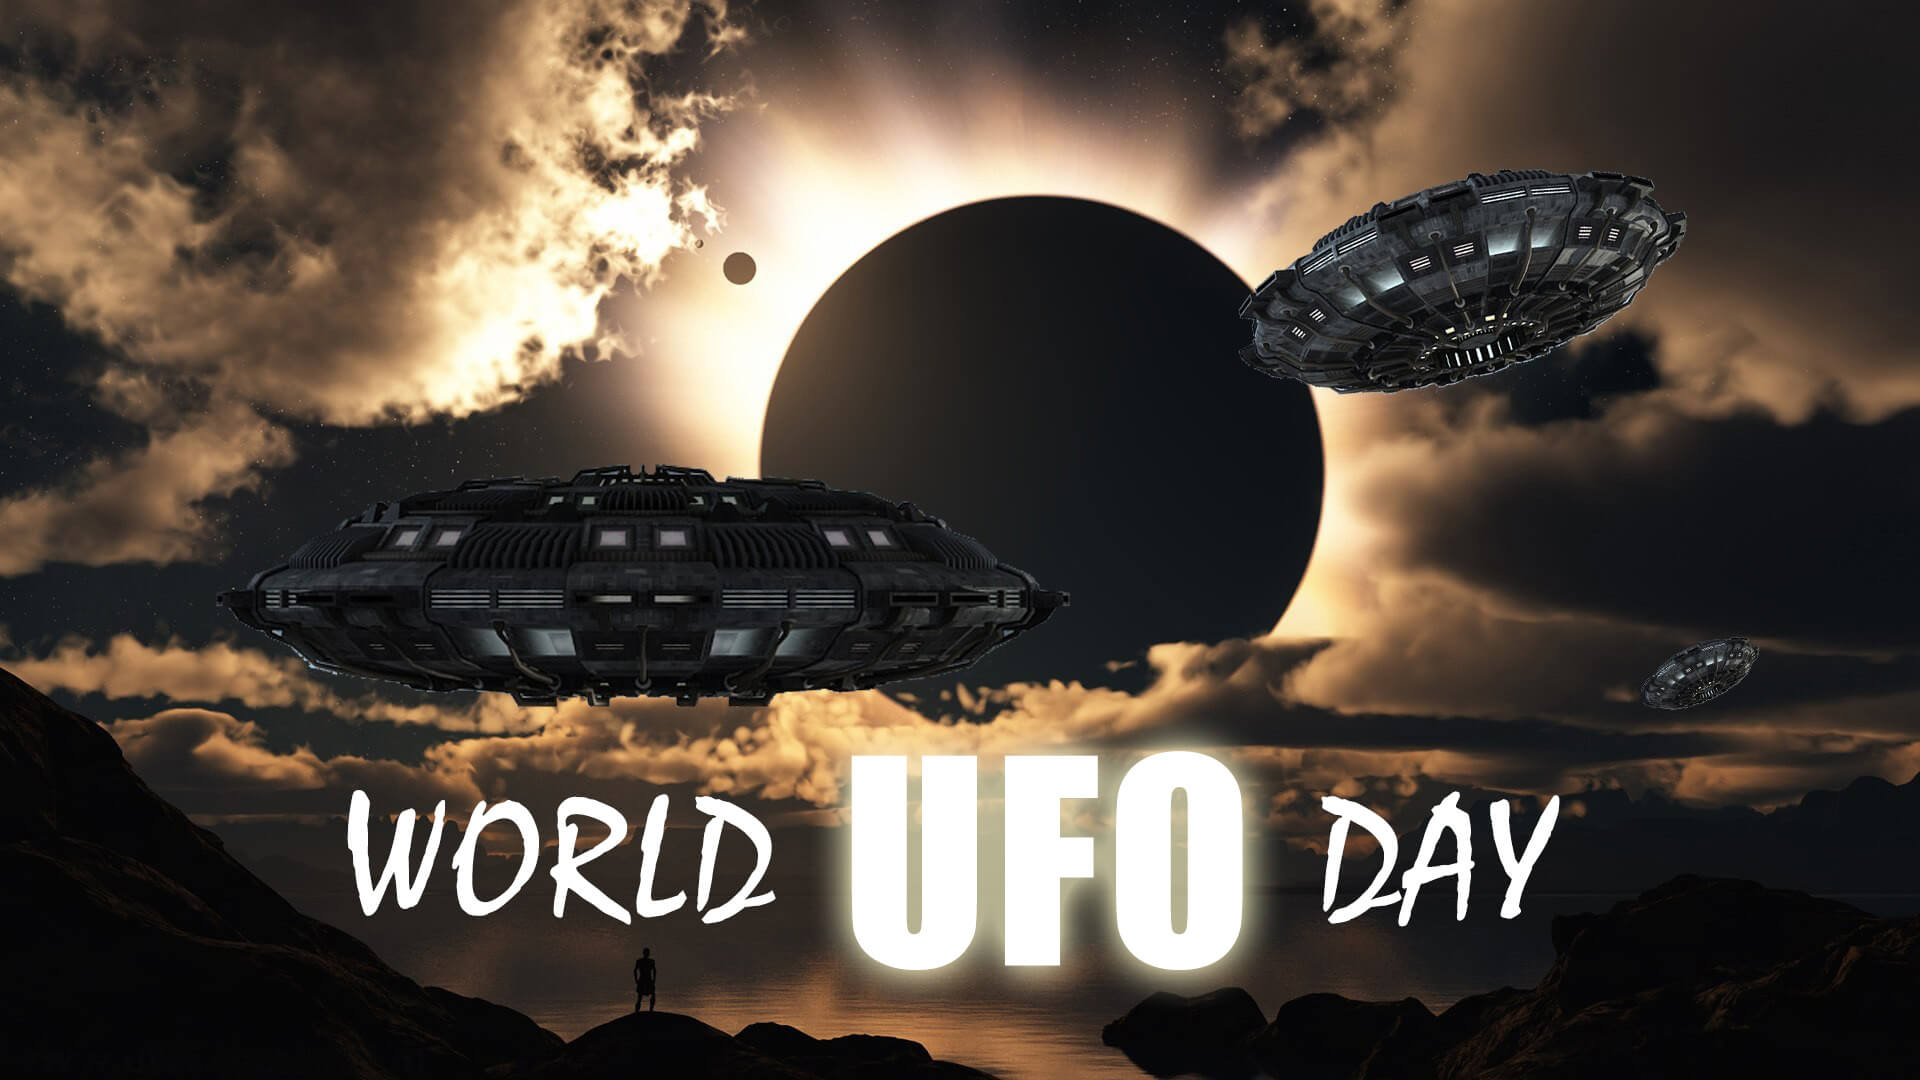 world ufo day unidentified flying object saucers sky hd wallpaper